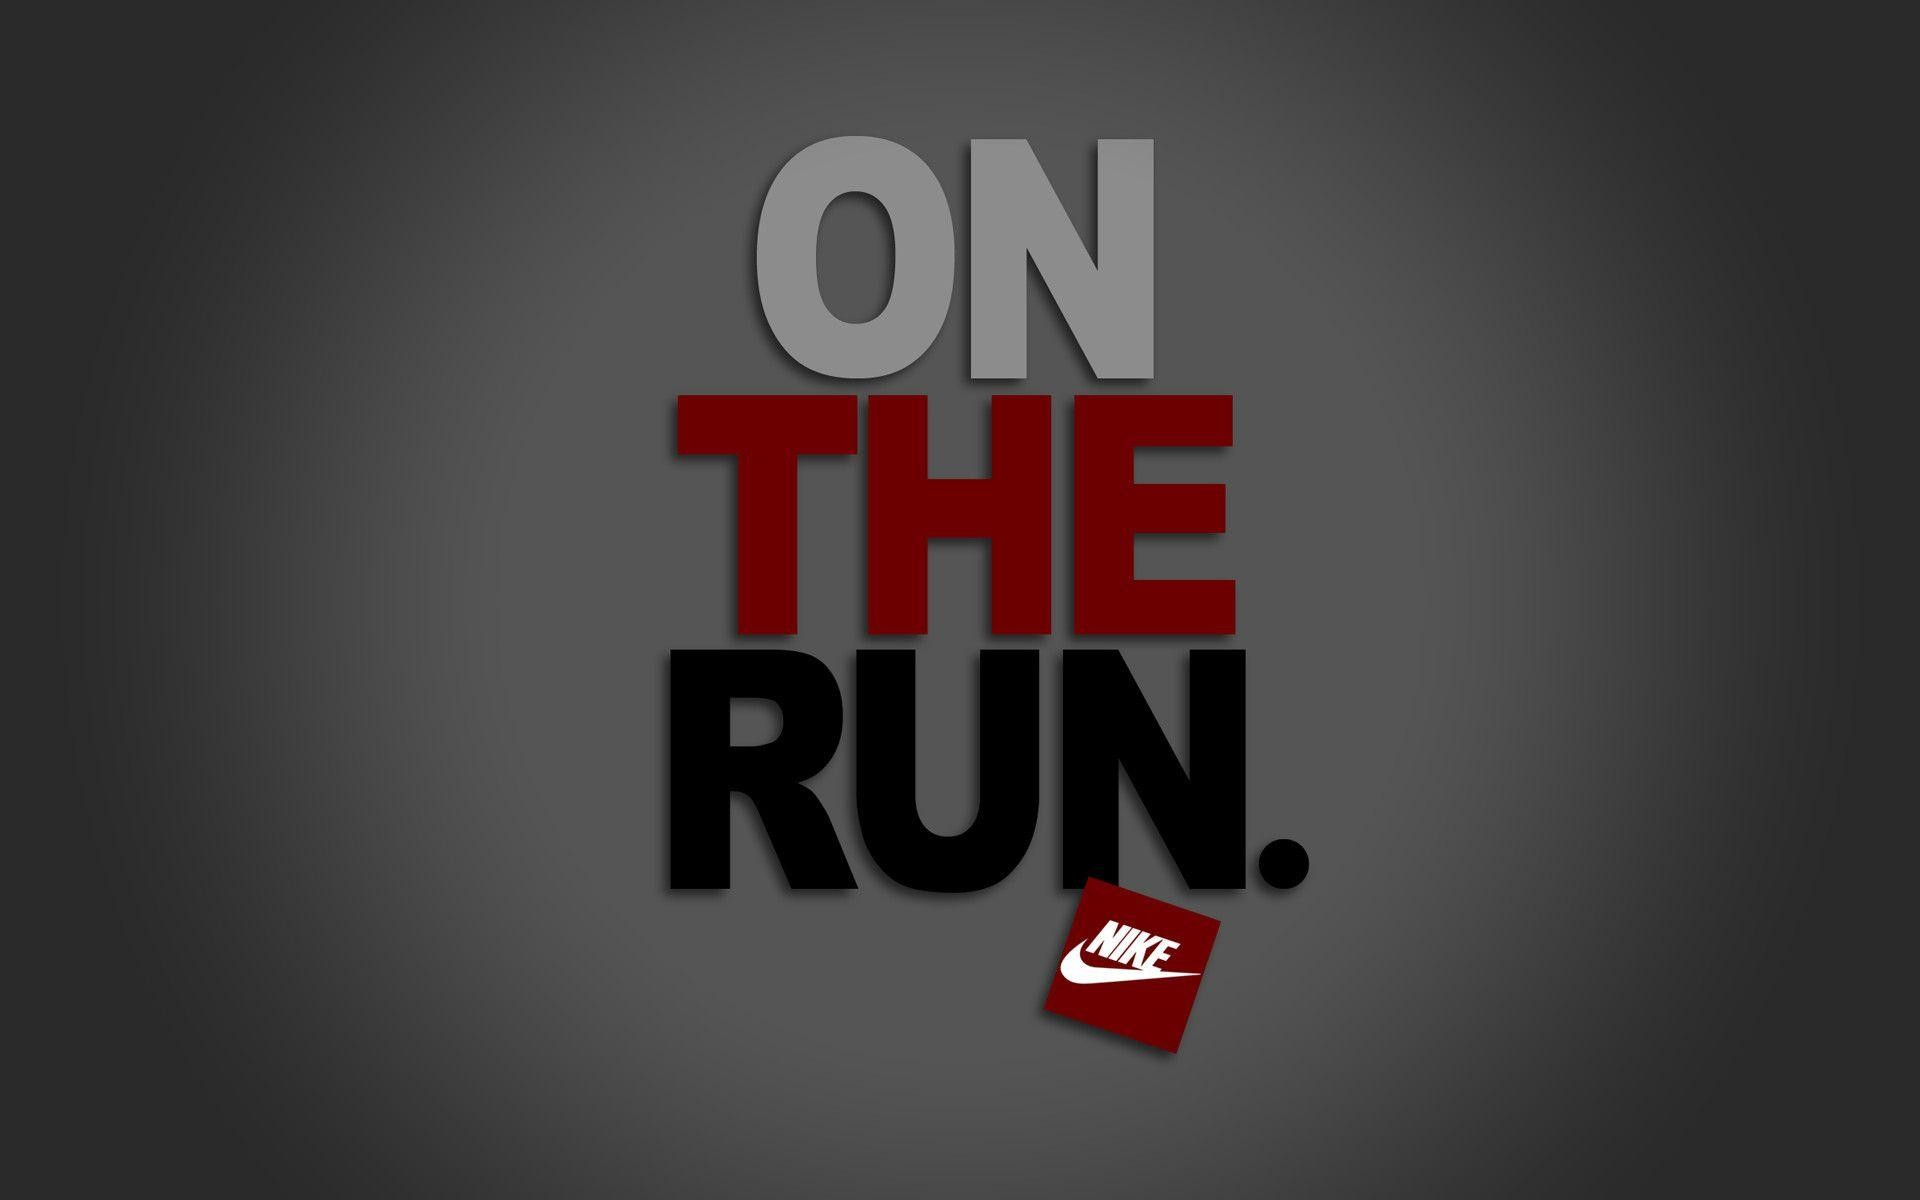 Nike wallpapers 74 images 1920x1200 download free nike sb logo wallpapers wallpapers backgrounds voltagebd Choice Image